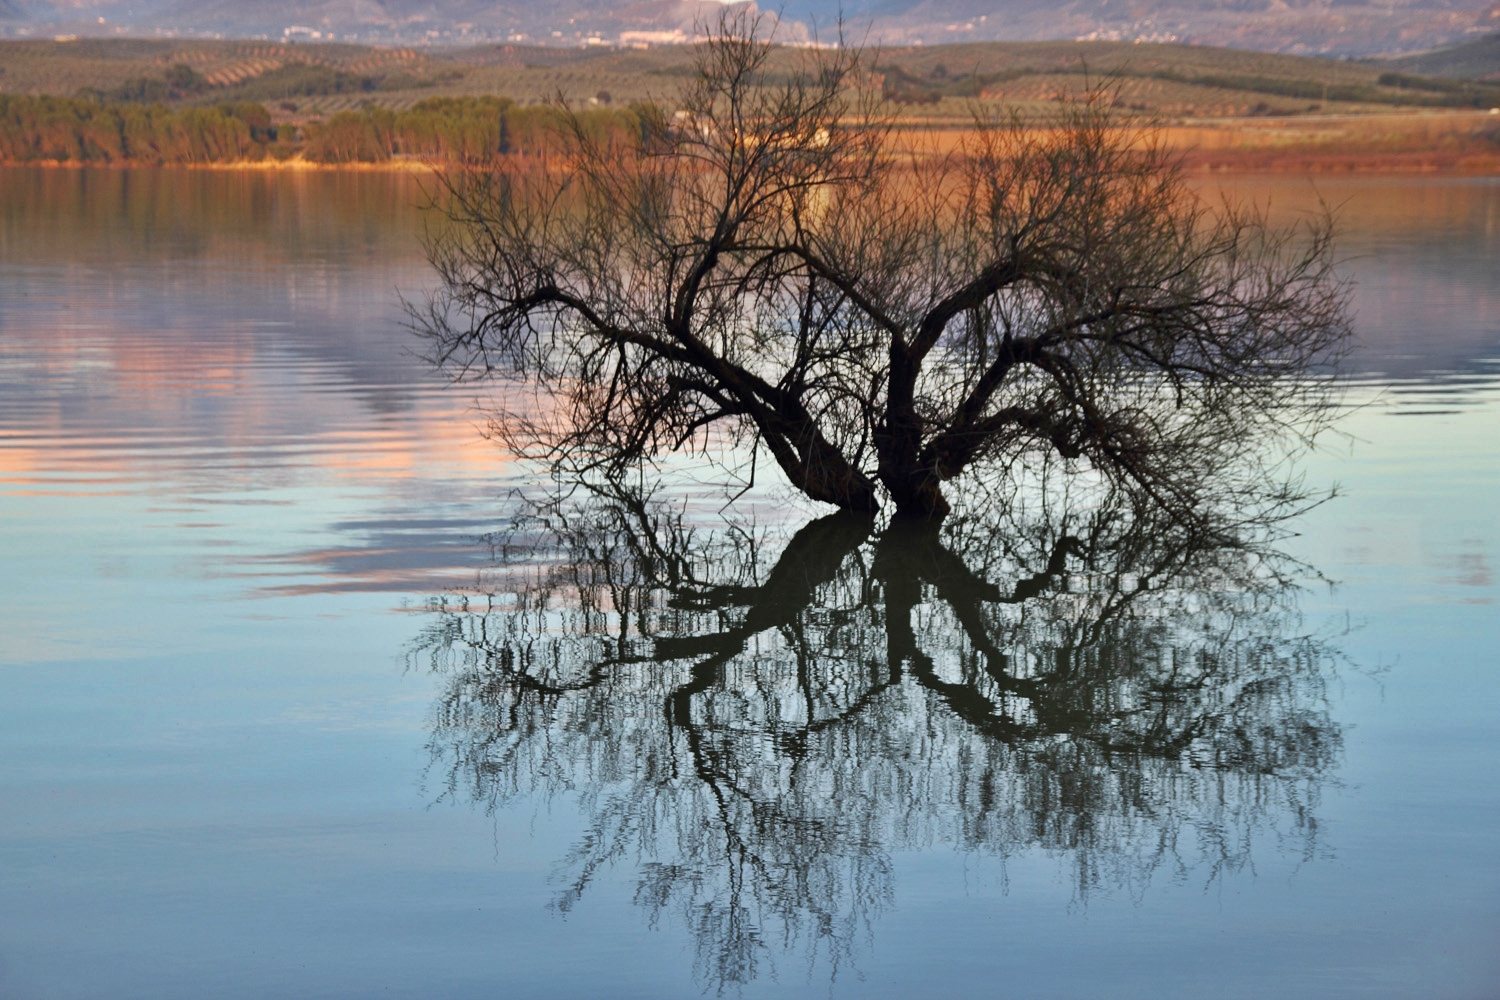 """The Water Tree"" - Pantano de Cubillas, Granada - L07718"